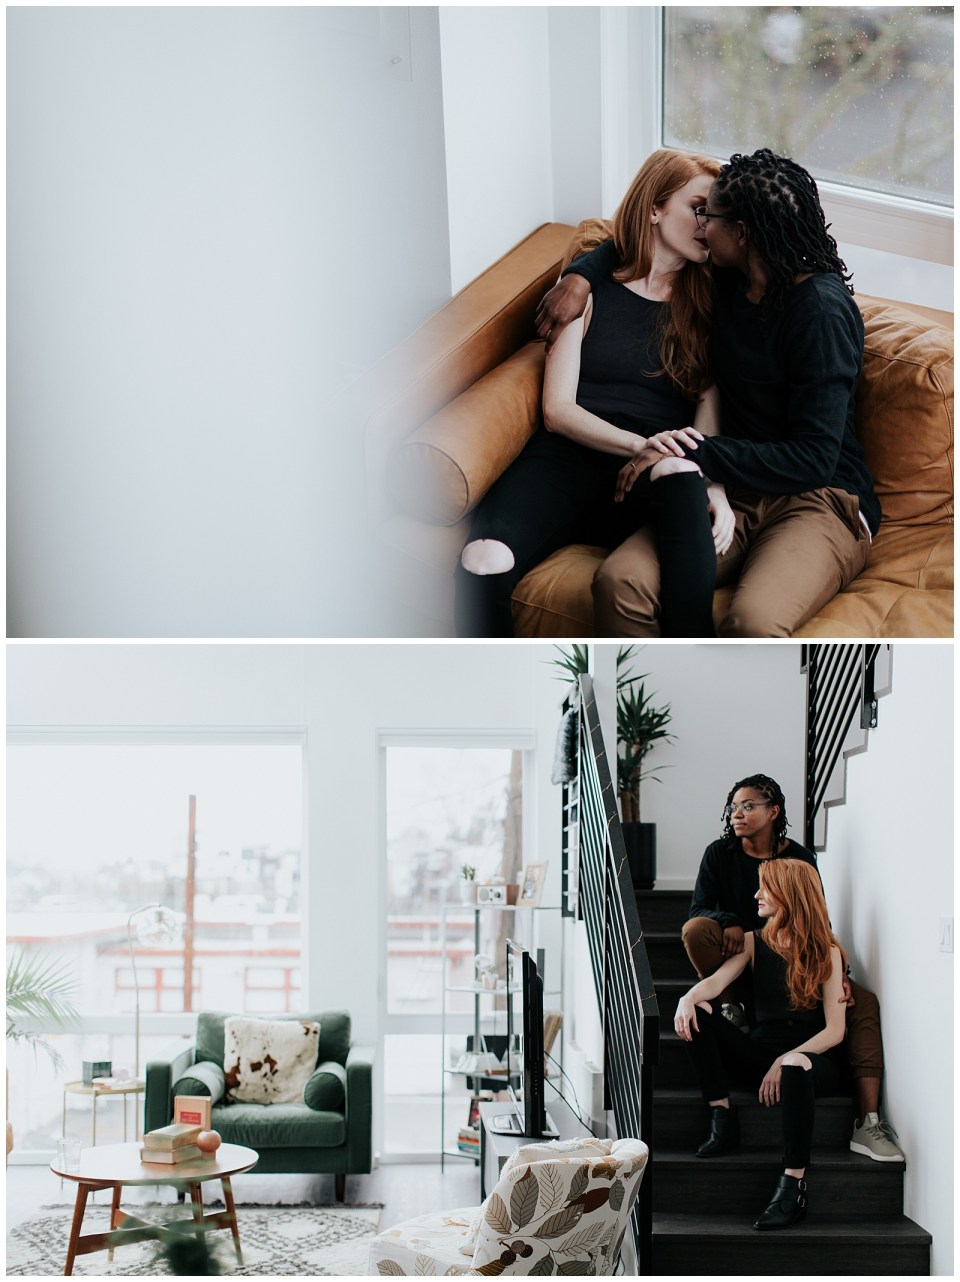 engaged-couple-sitting-on-couch-and-stairs